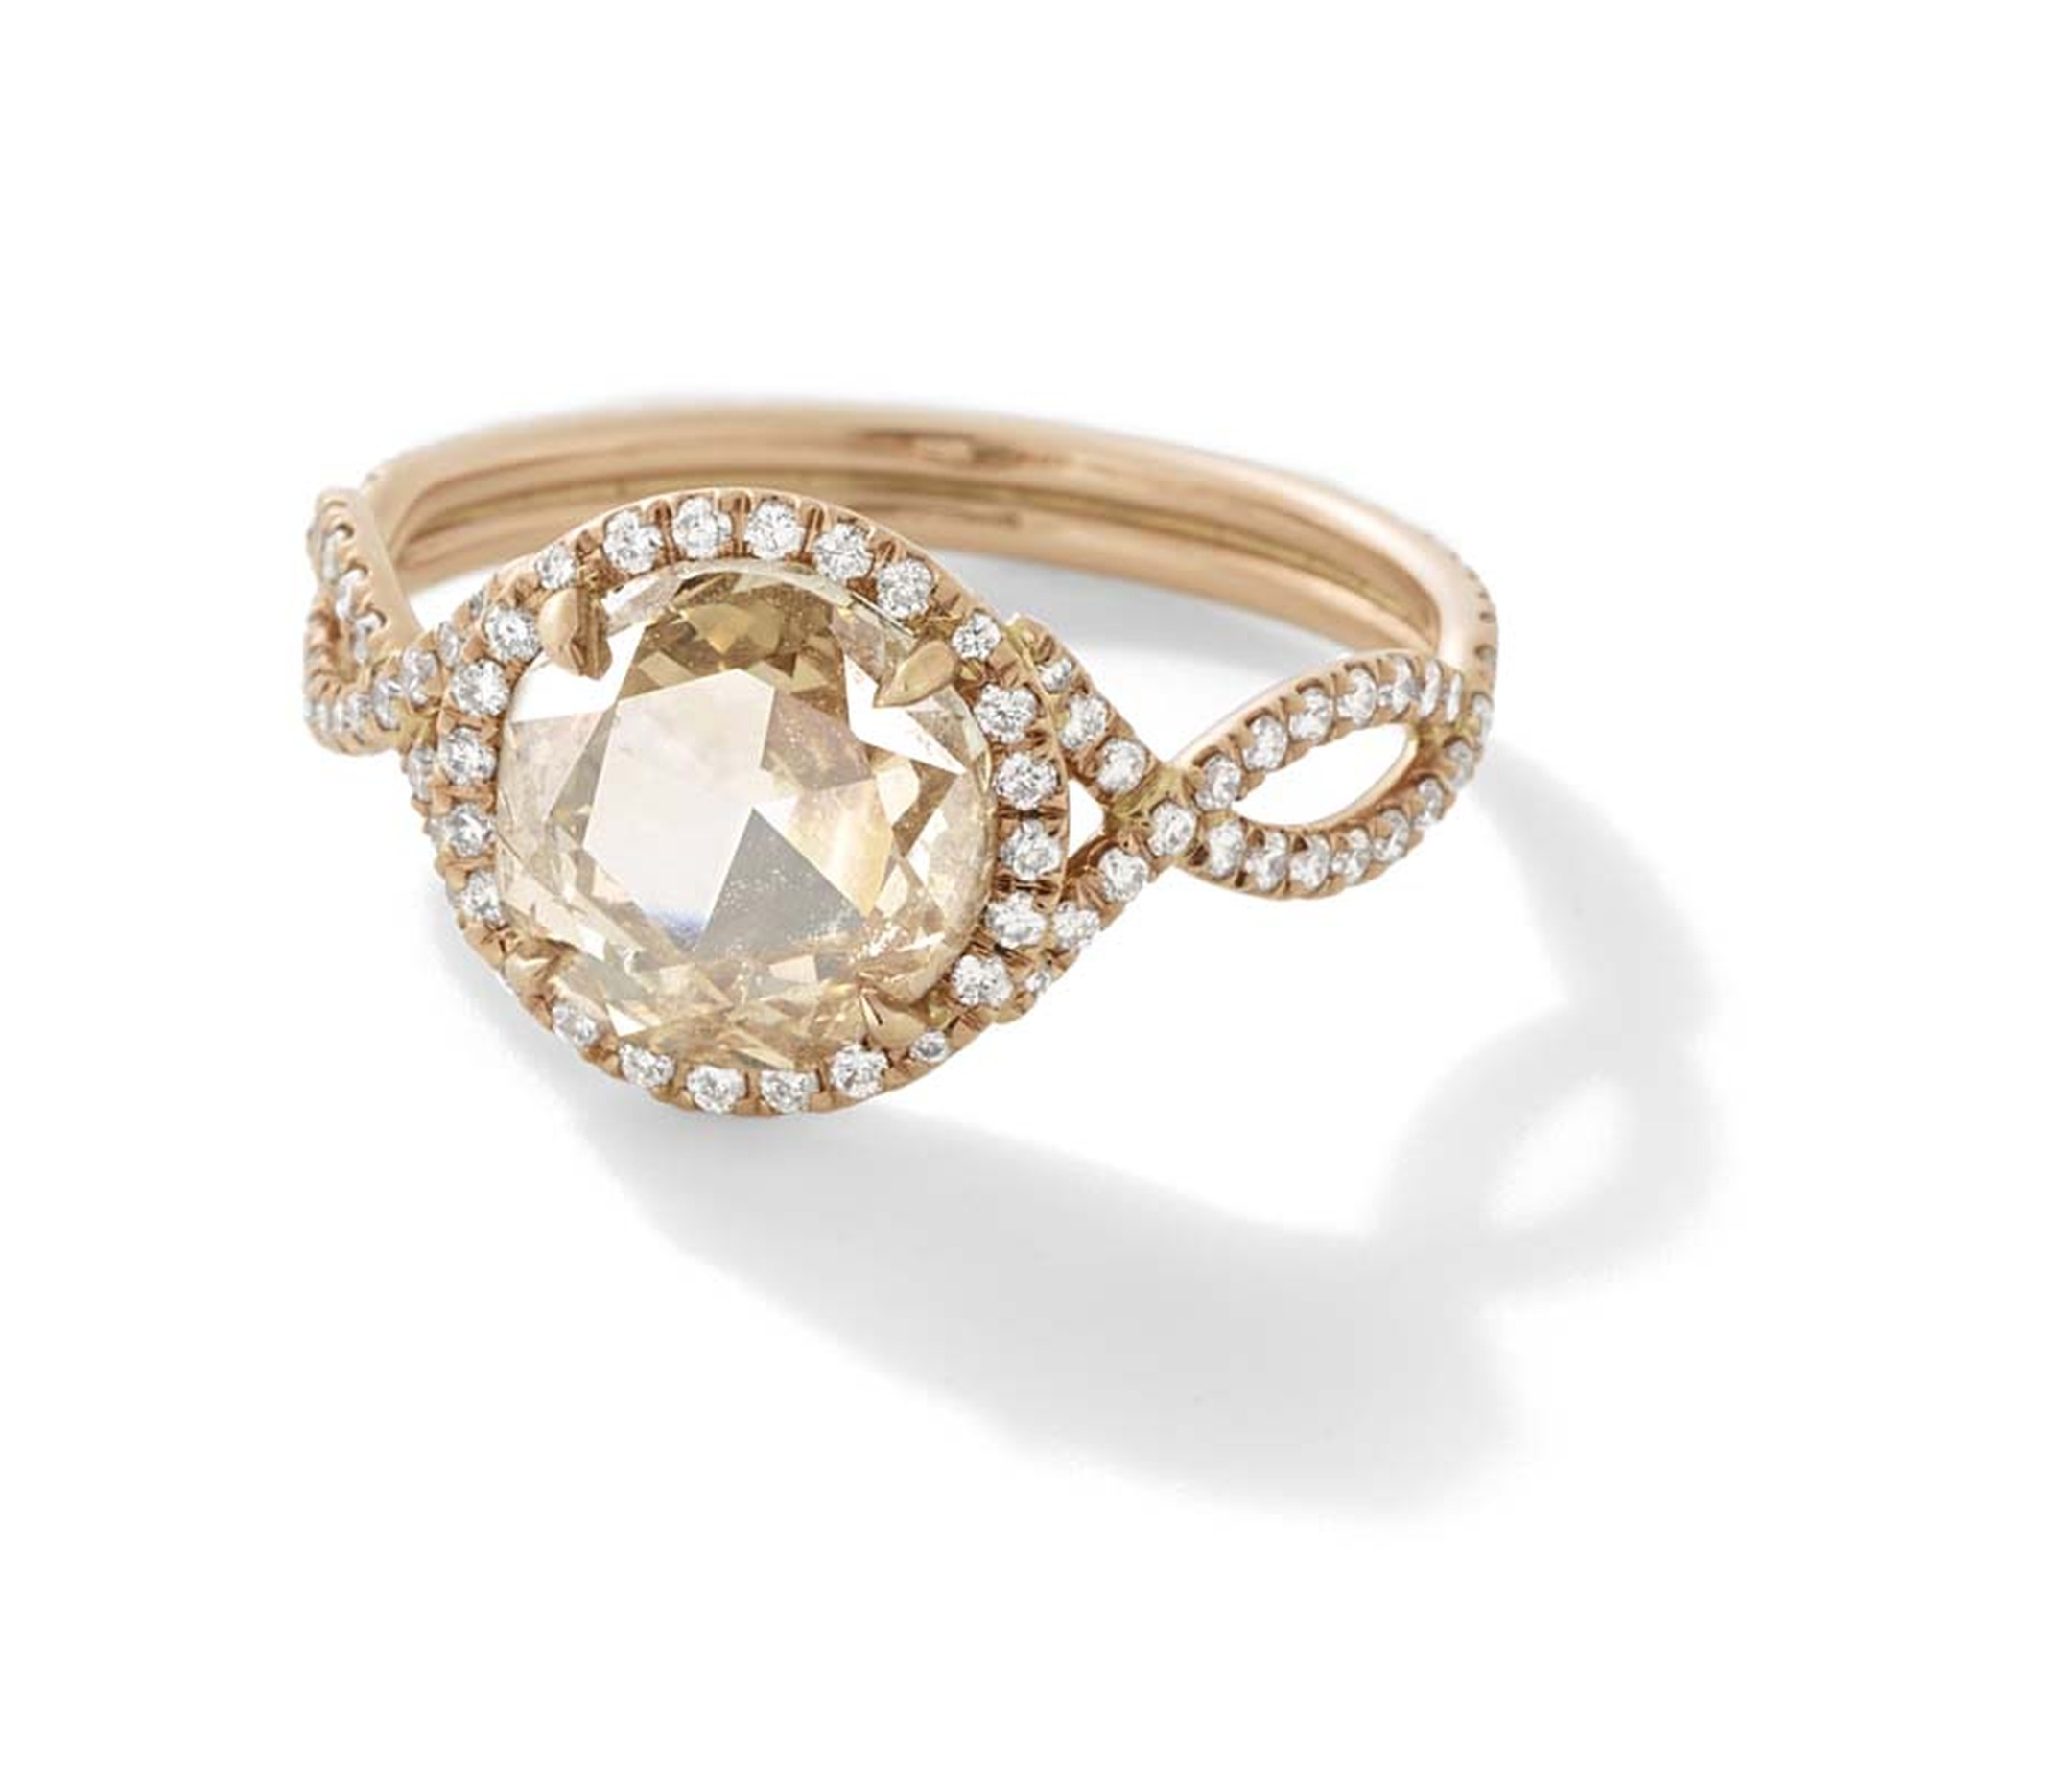 Monique Péan Mineraux engagement ring in recycled rose gold, set with an antique champagne rose cut diamond and diamond pavé ($39,690)